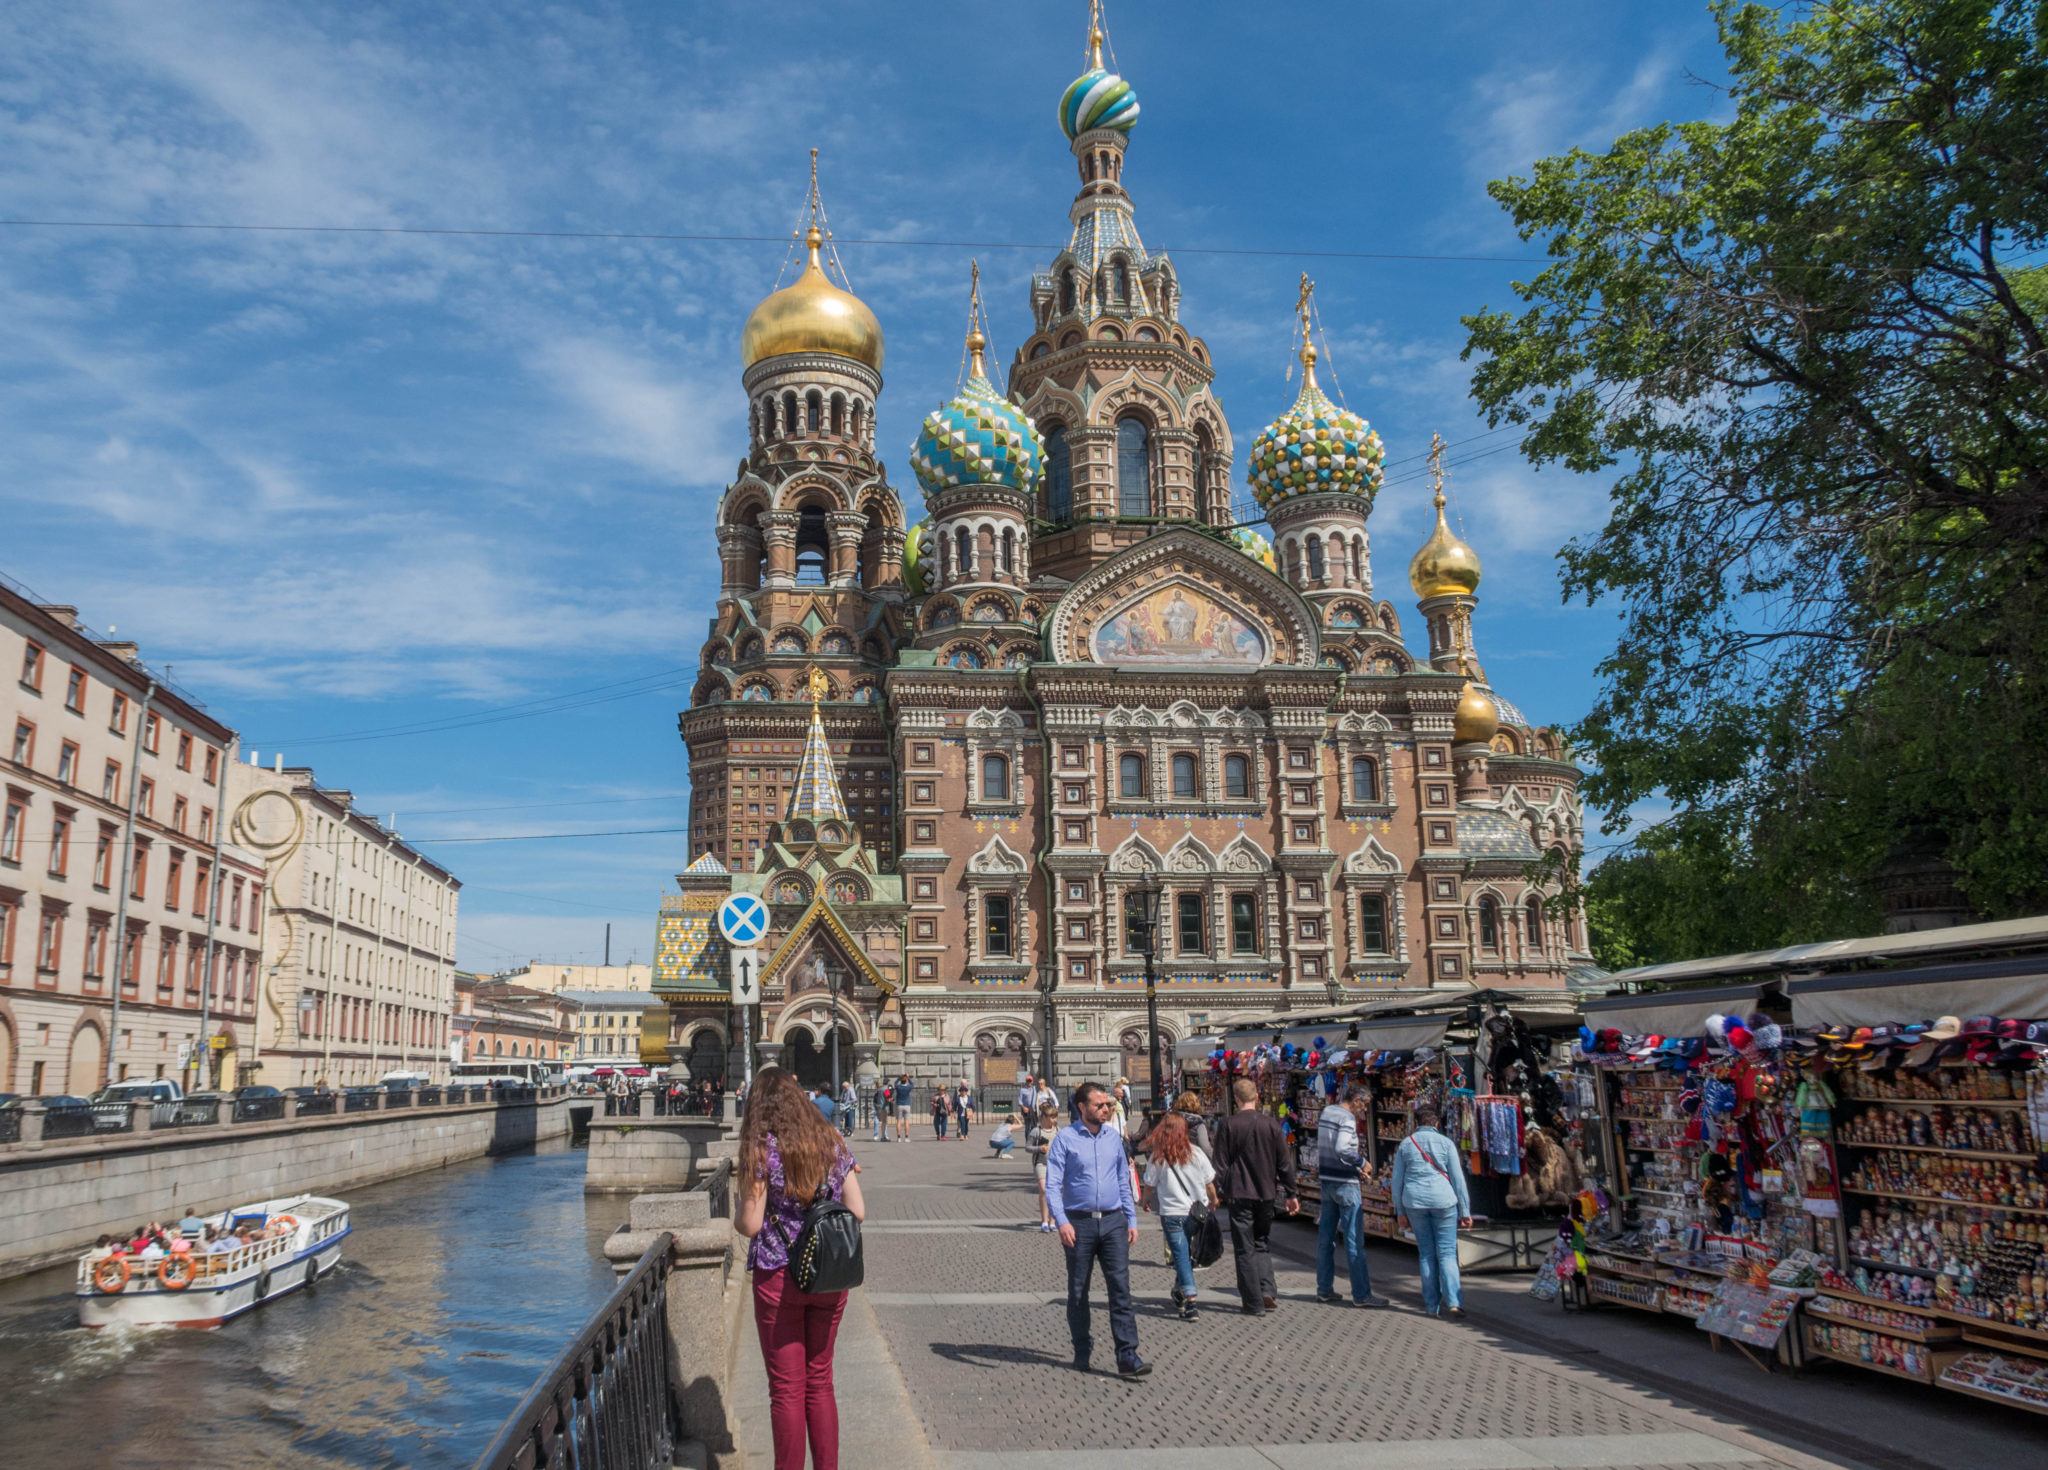 St. Petersburg and the Nevsky Prospect